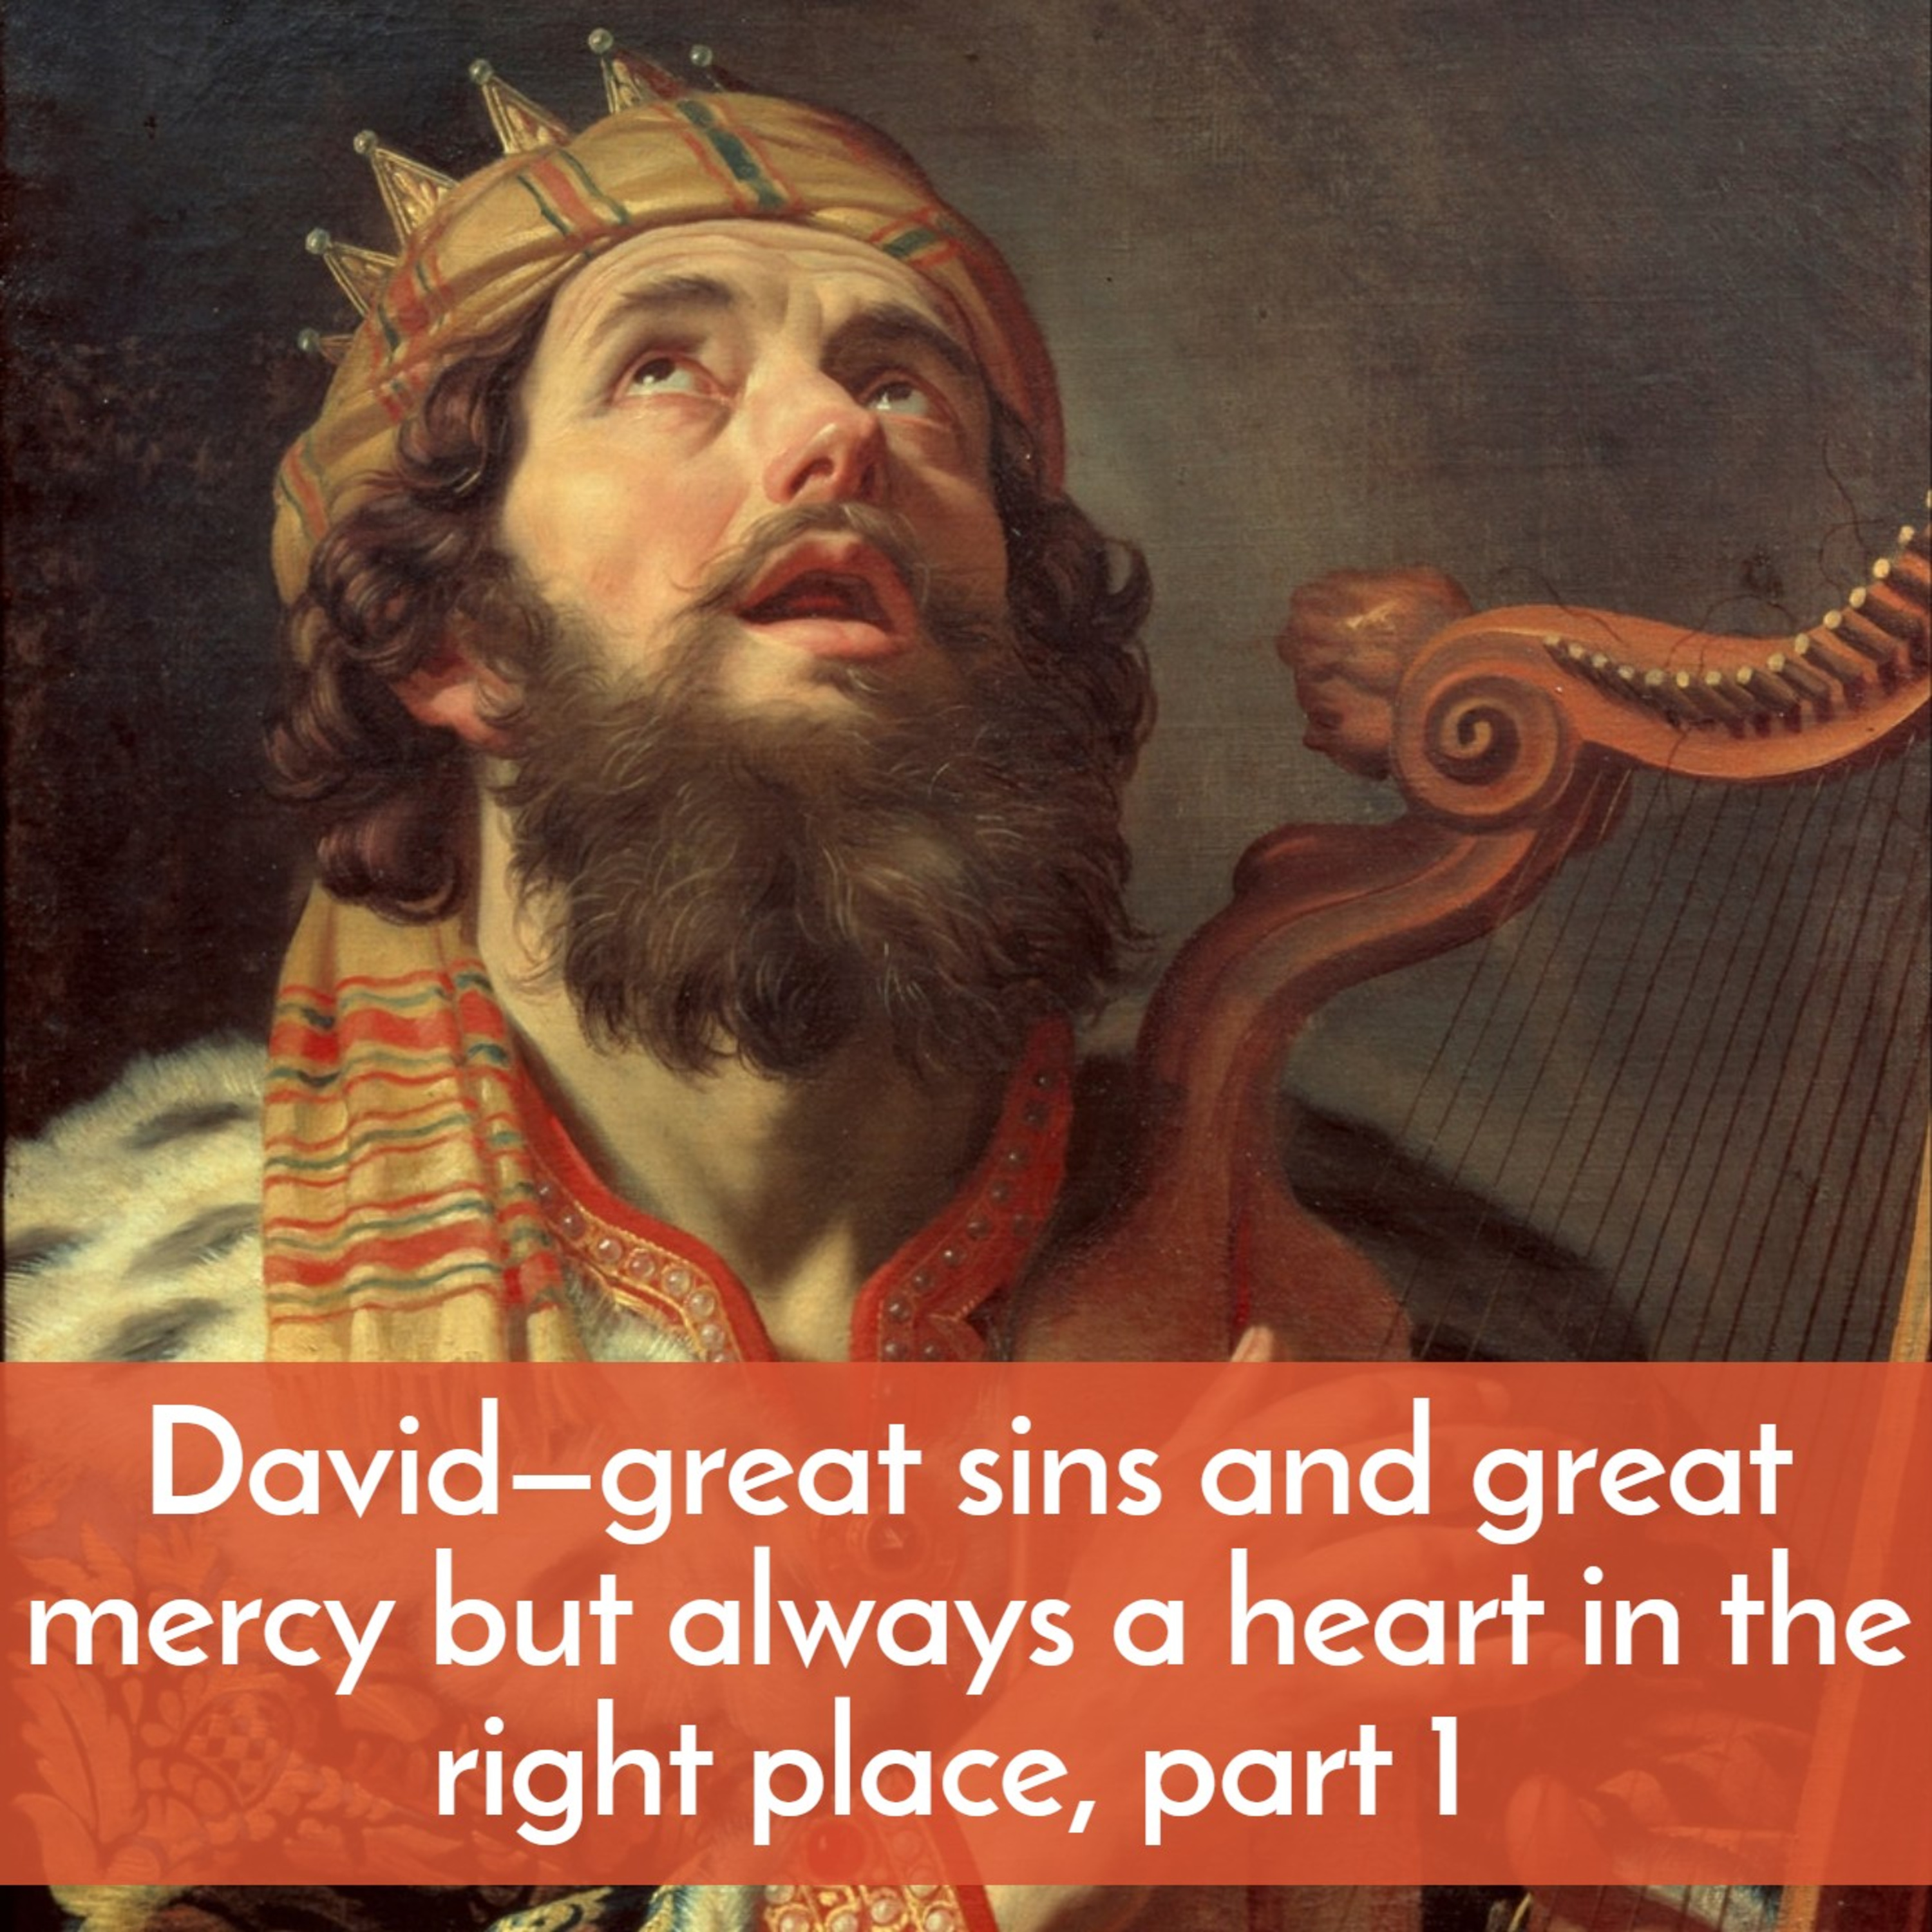 #31 David—great sins and great mercy but always a heart in the right place, part 1